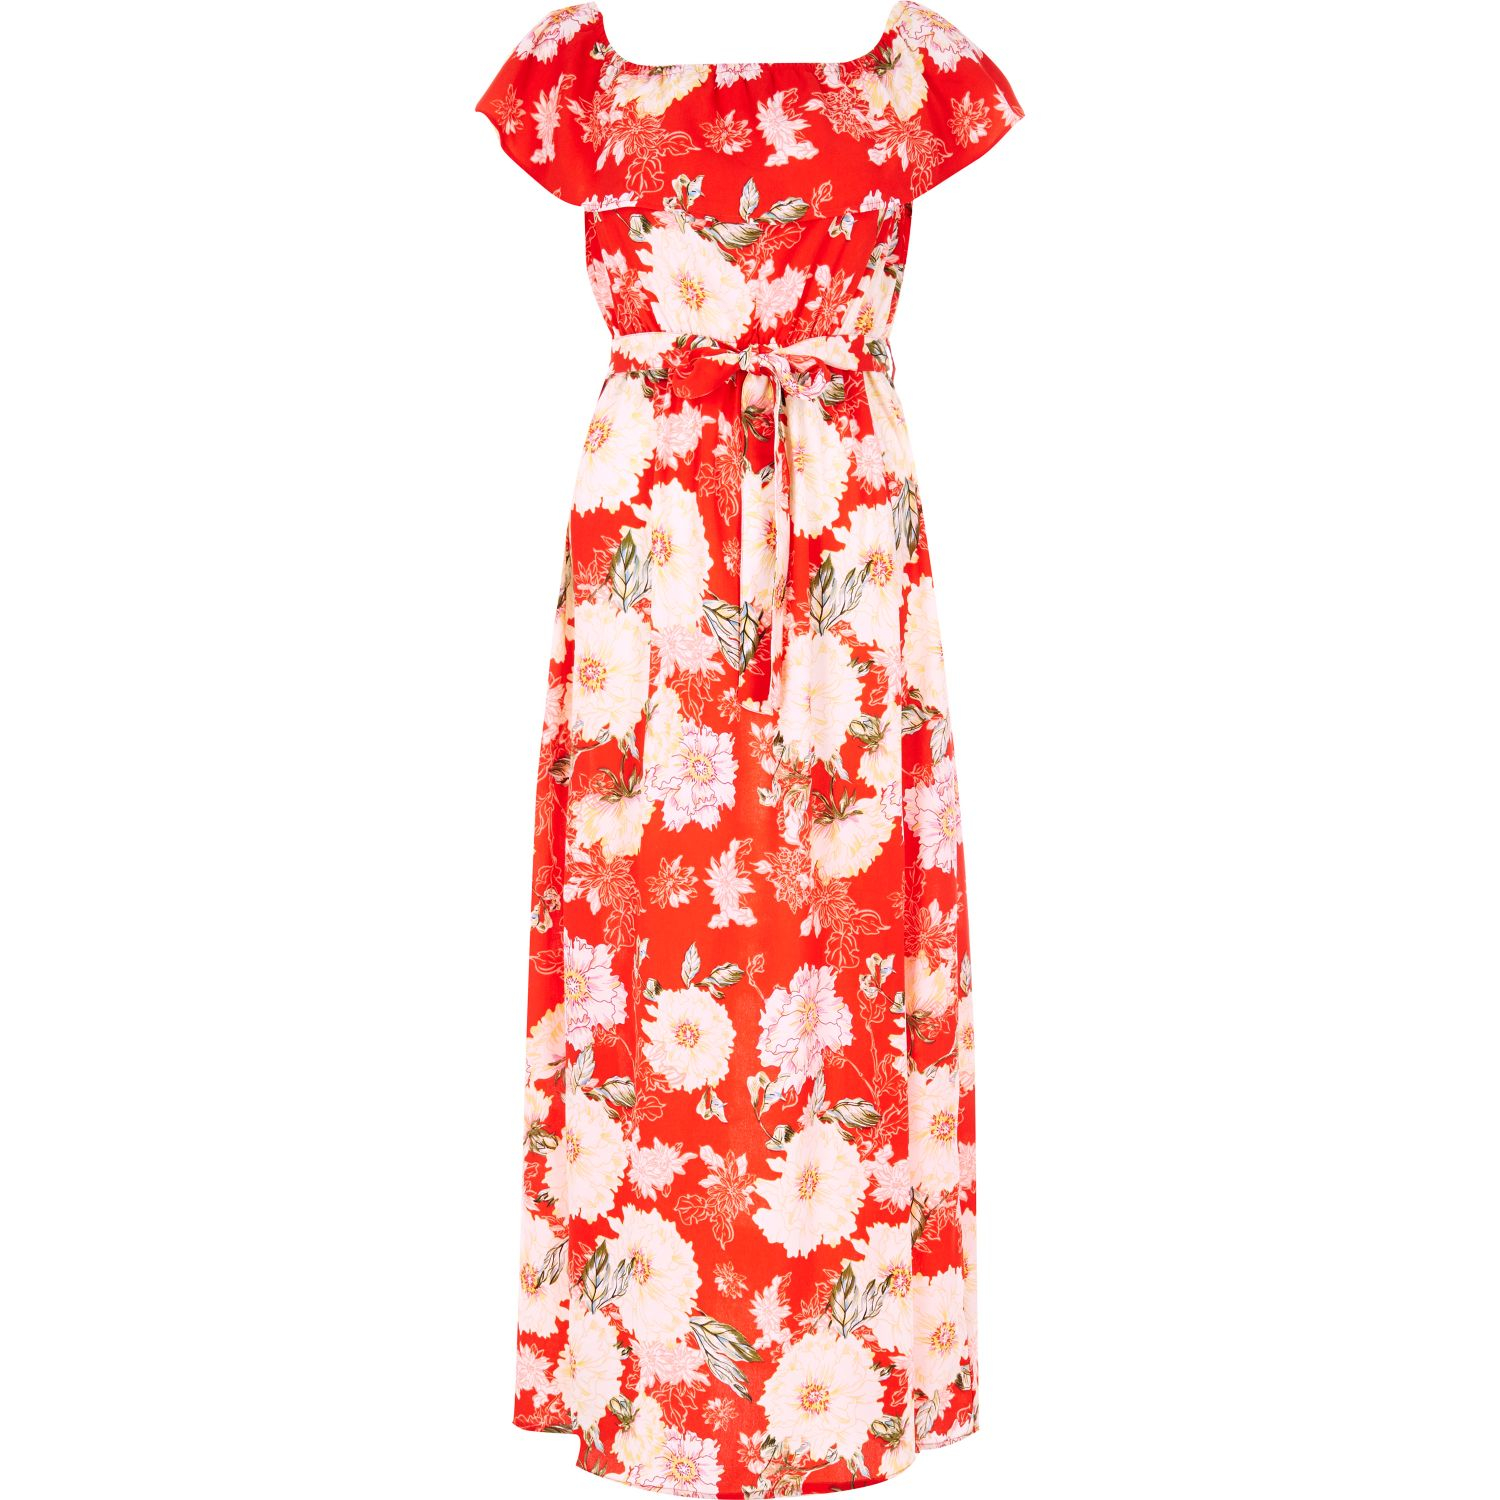 796af84f99a River Island Red Floral Print Bardot Maxi Dress in Red - Lyst